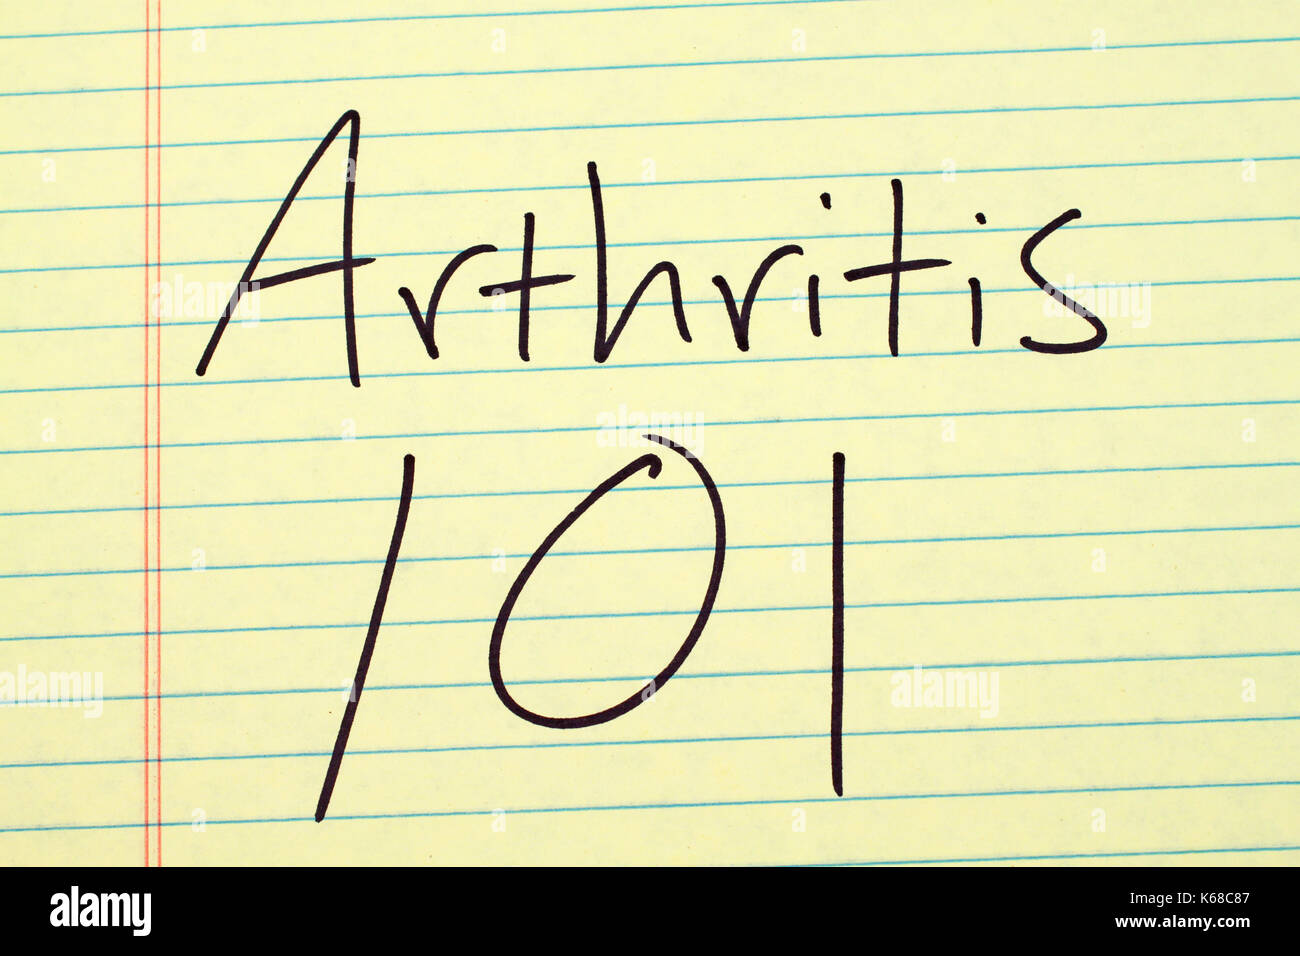 The words 'Arthritis 101' on a yellow legal pad - Stock Image